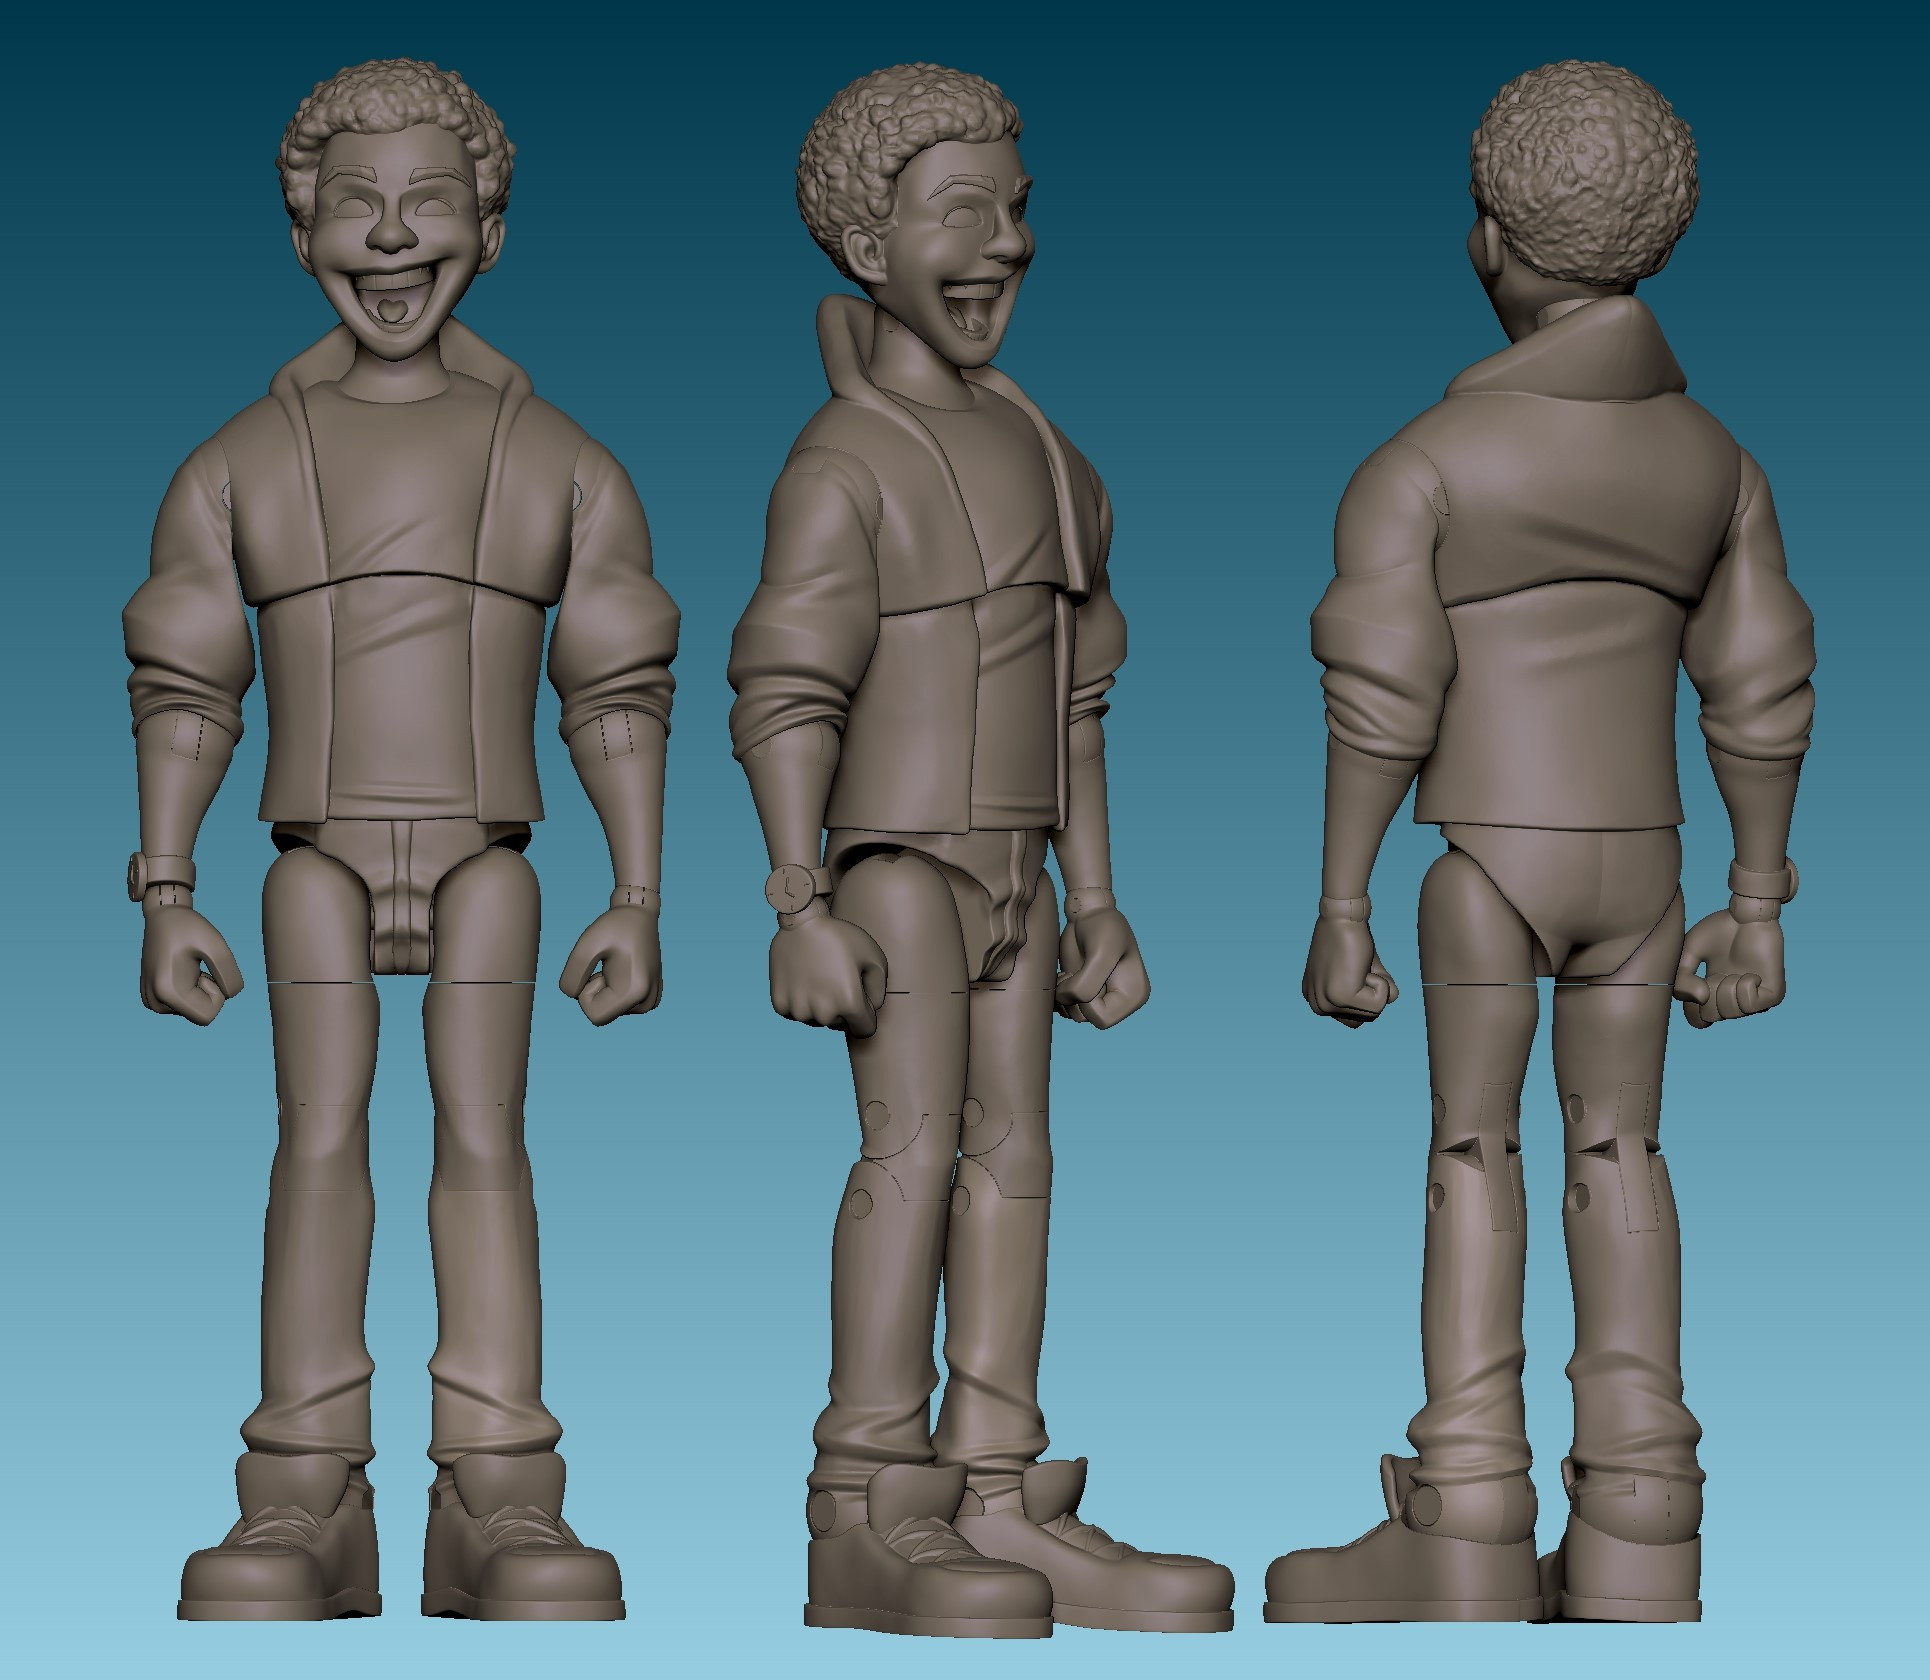 I did all the joint creation and keying in Zbrush. Here is the final sculpt with all the action figure joints carved out. Next we'll look at them in motion!